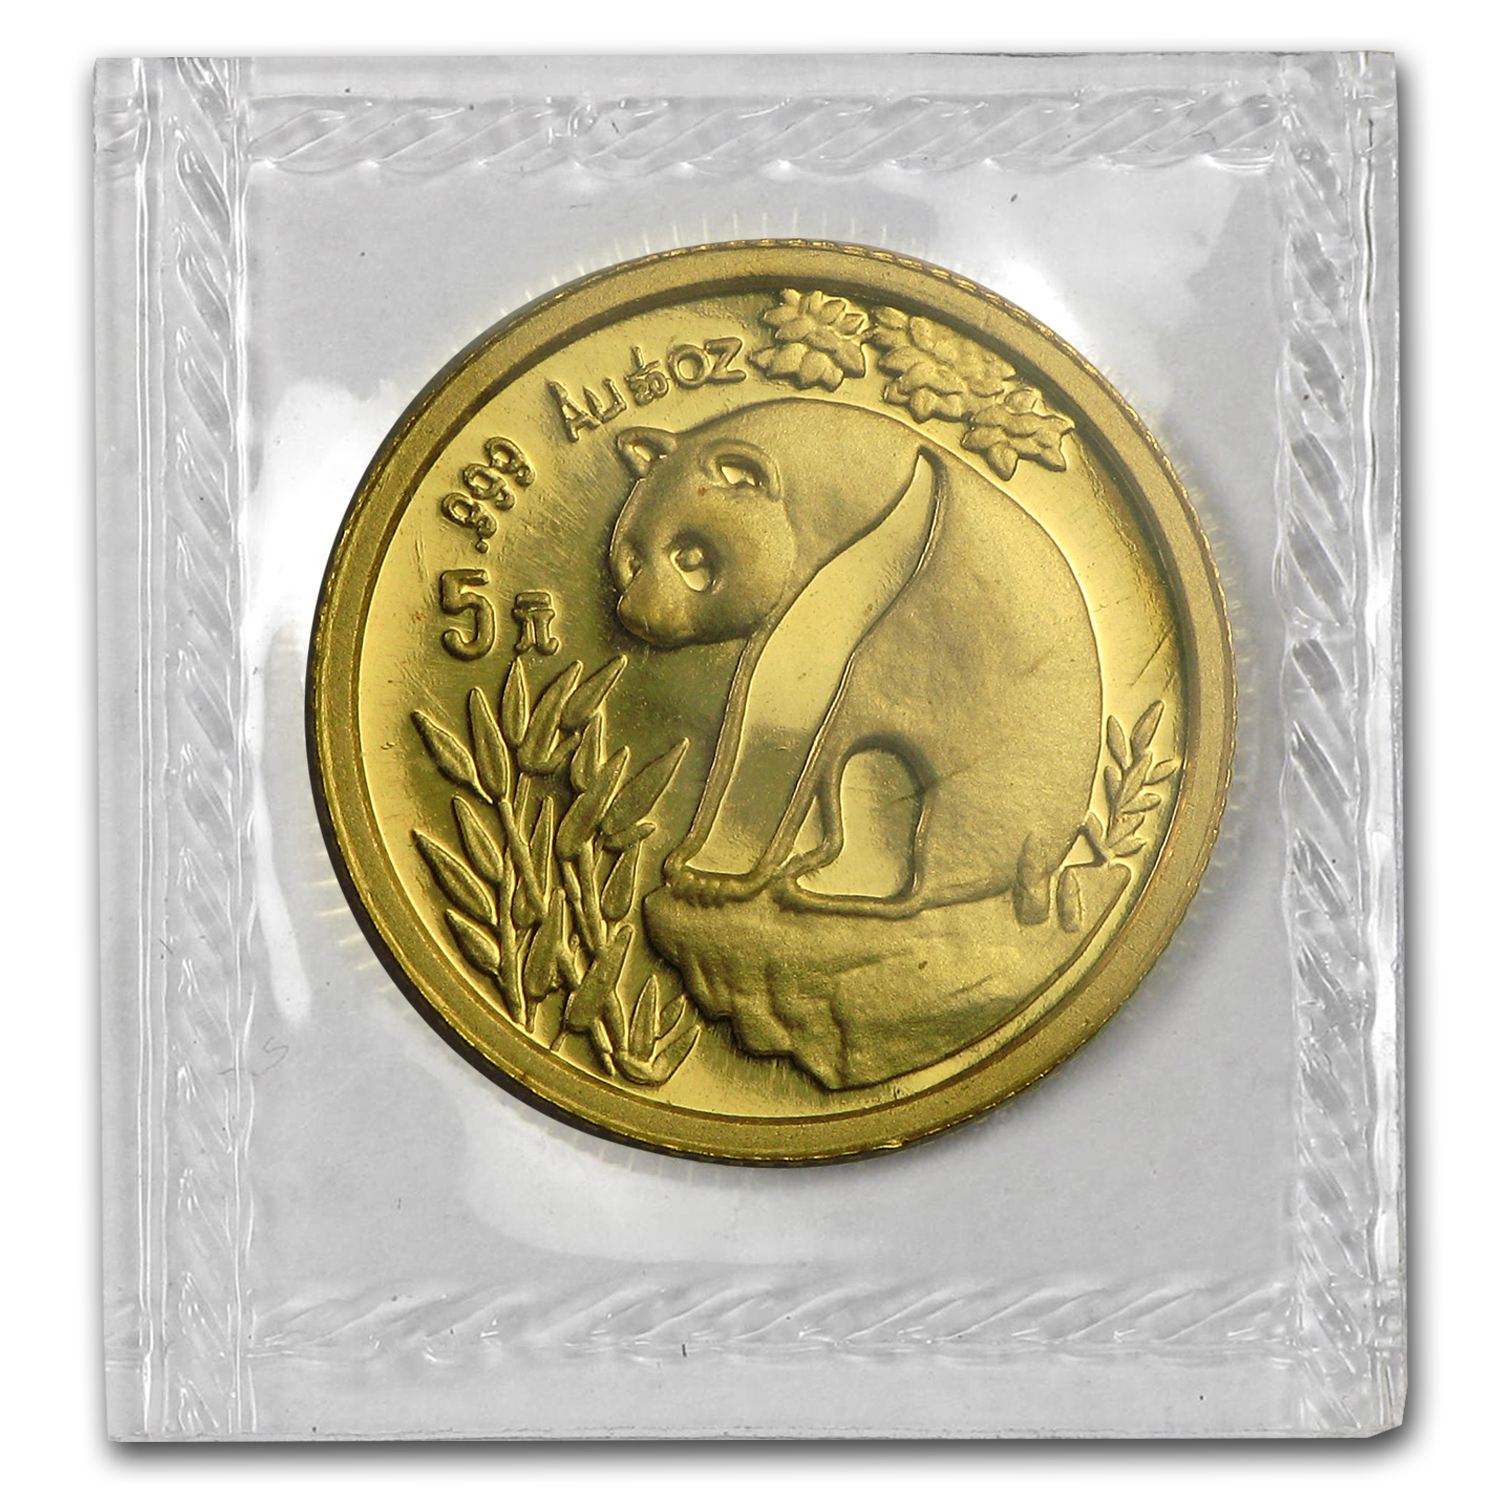 1993 1/20 oz Gold Chinese Panda Large Date BU (Sealed)